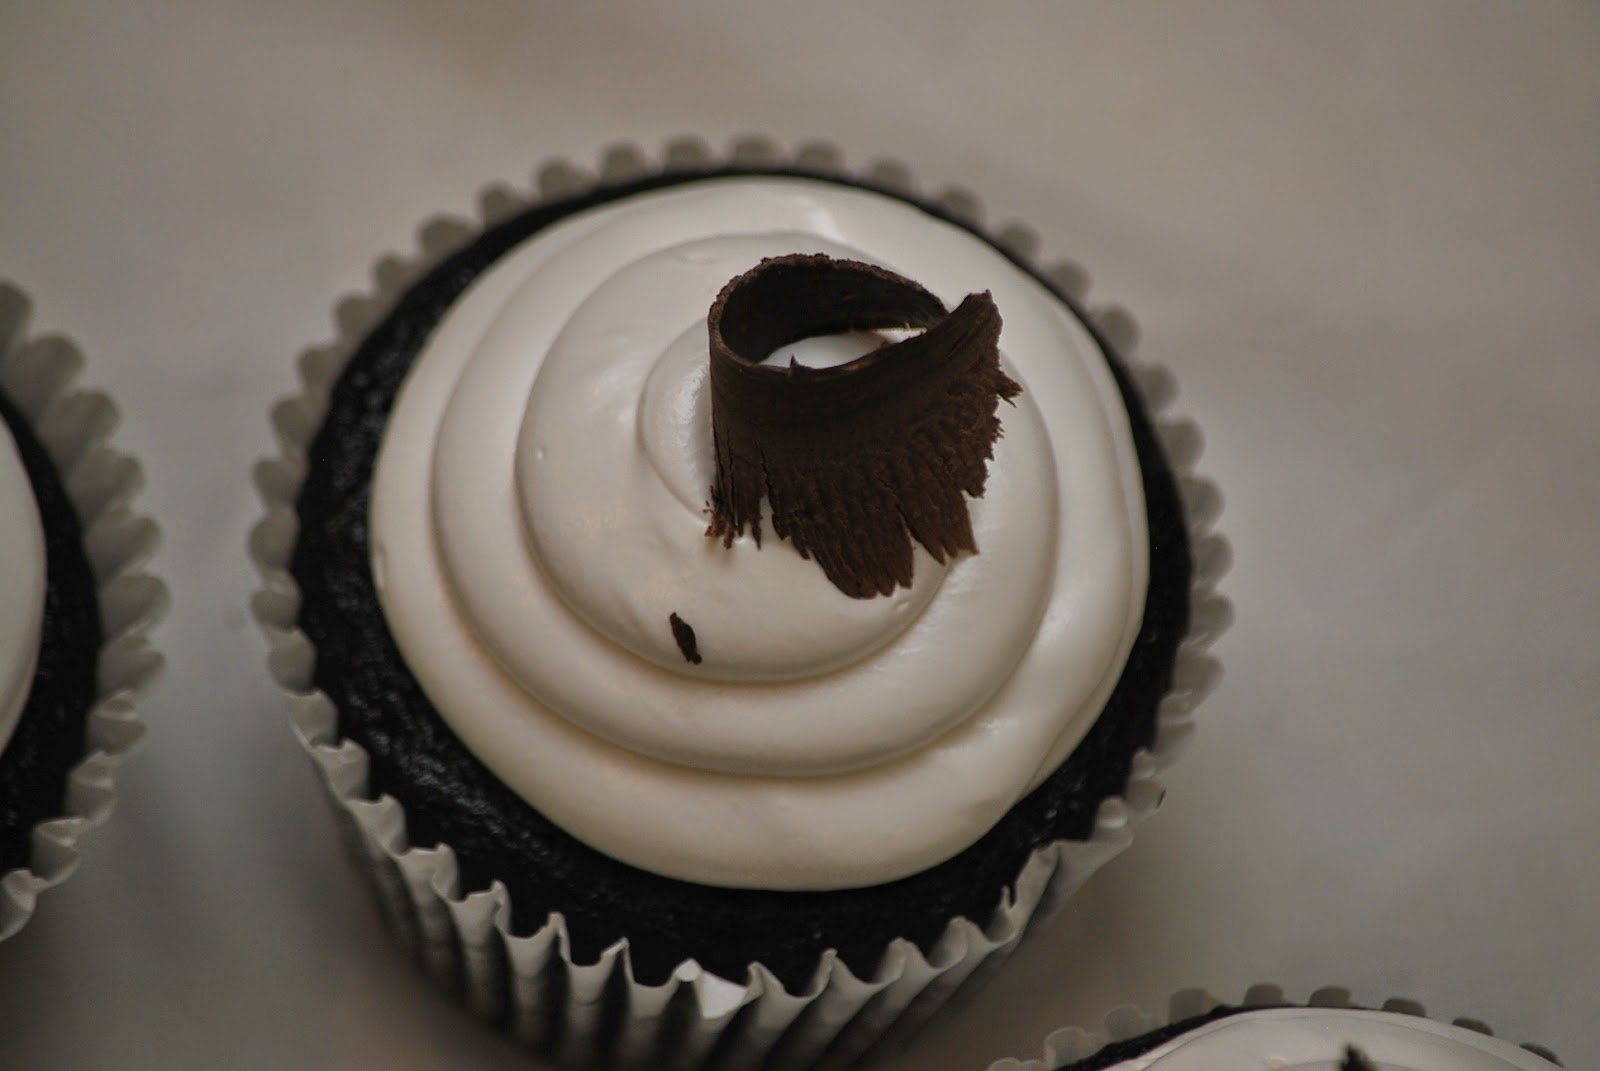 My story in recipes: Black Tie Cupcakes